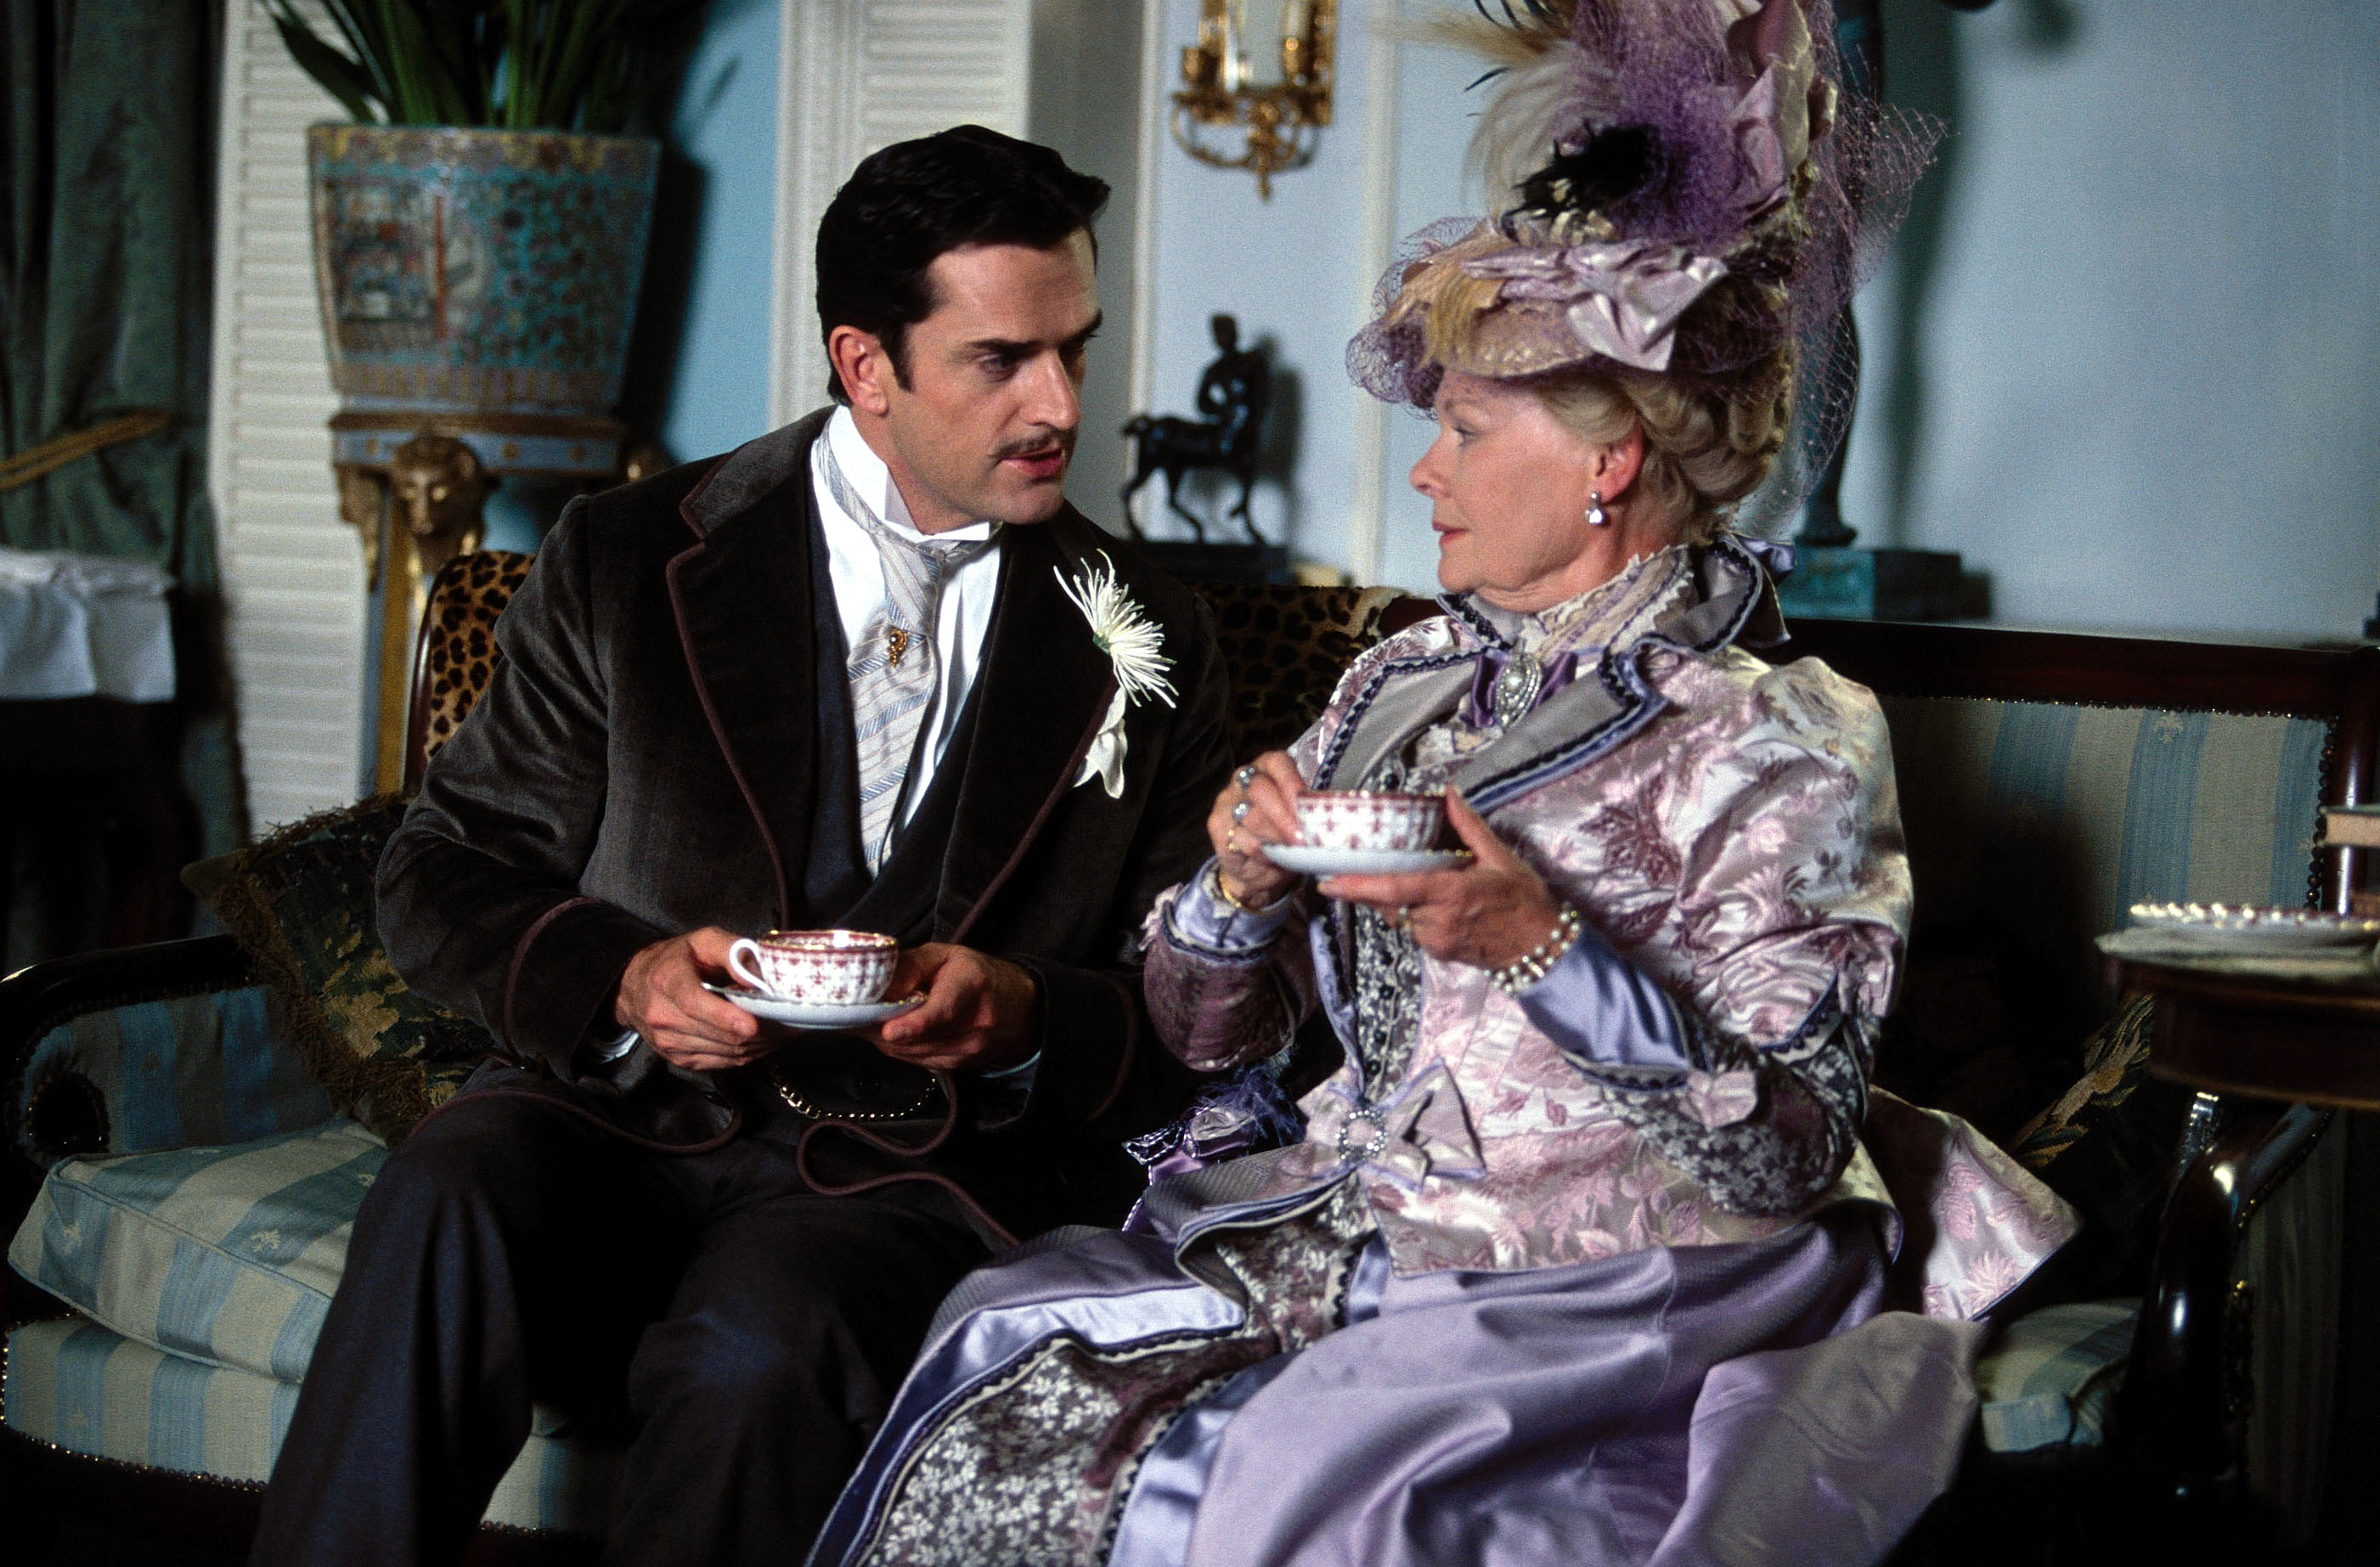 the importance of being earnest film Watch importance of being earnest, the movie online for free in his second adaptation of an oscar wilde play, writer-director oliver parker (an.